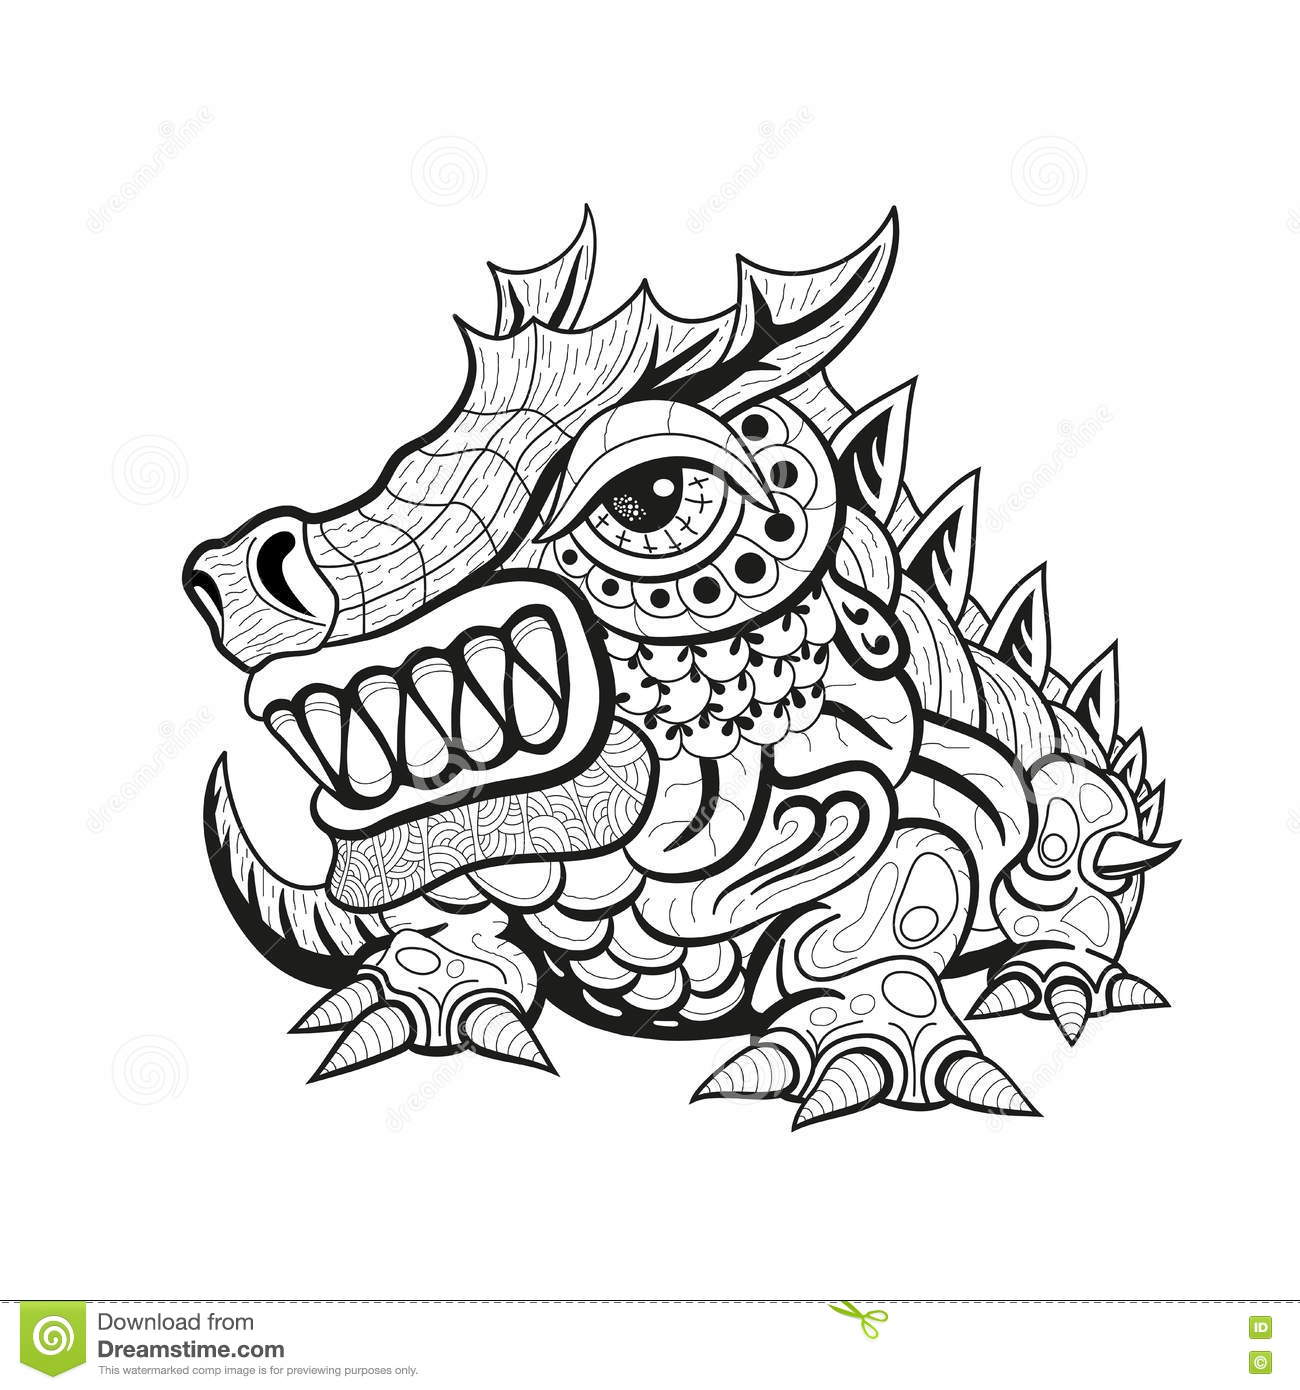 tattoo art sketch of an oriental dragon royalty free stock image 17130052. Black Bedroom Furniture Sets. Home Design Ideas